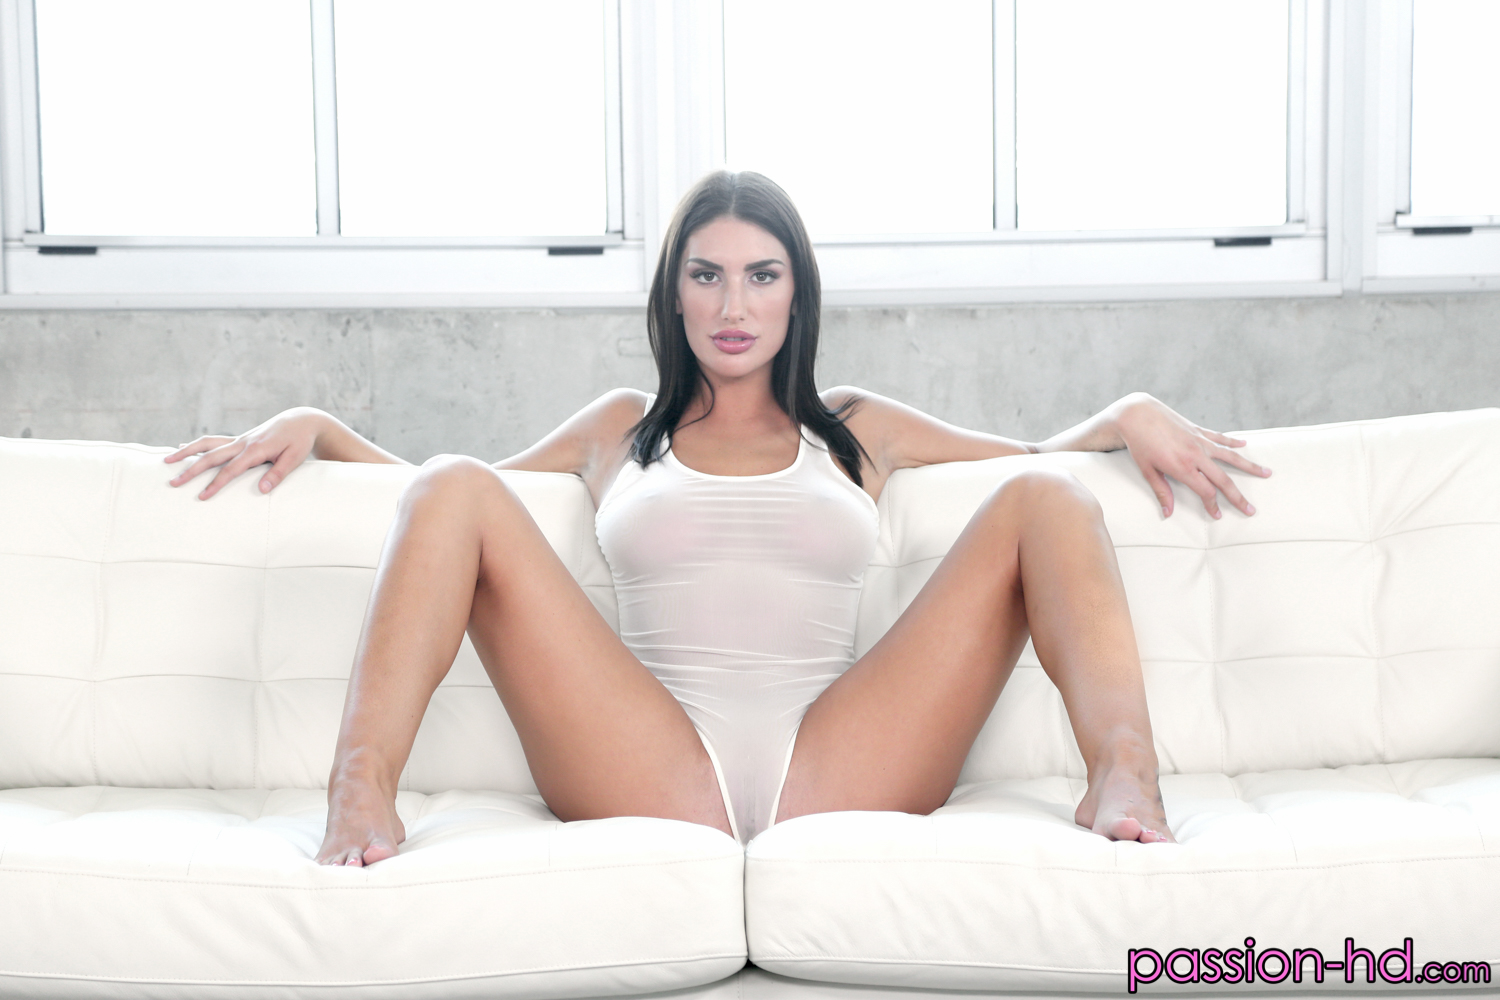 August ames hd pack